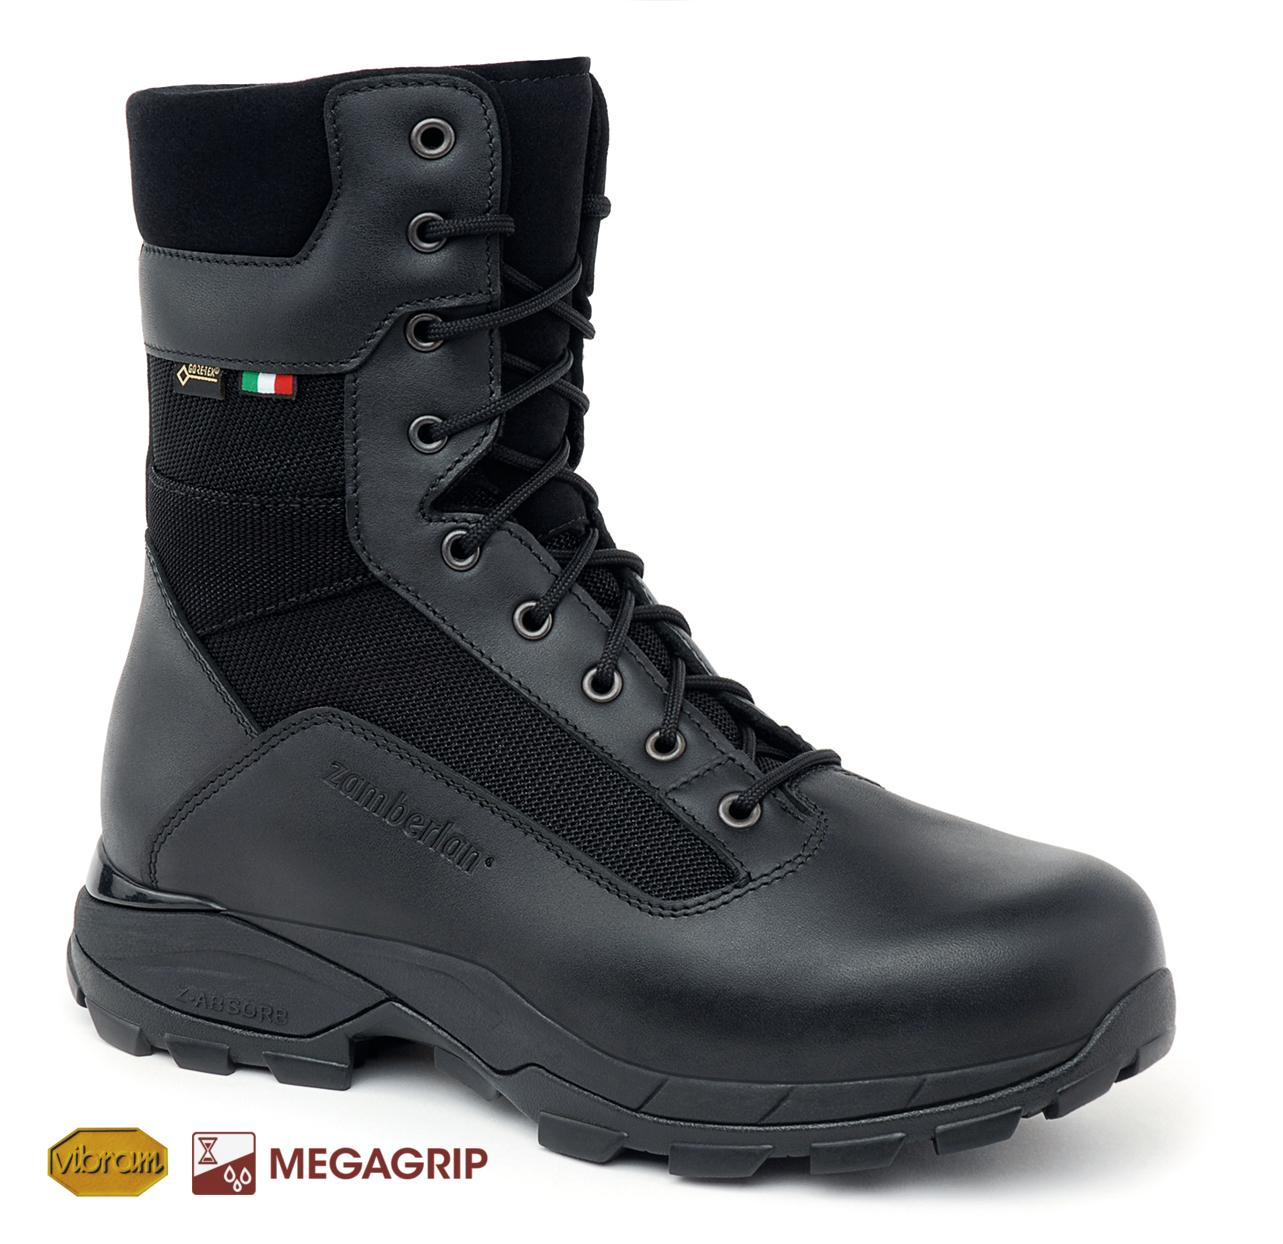 114 DEFENSE GTX® - Tactical boots - Black